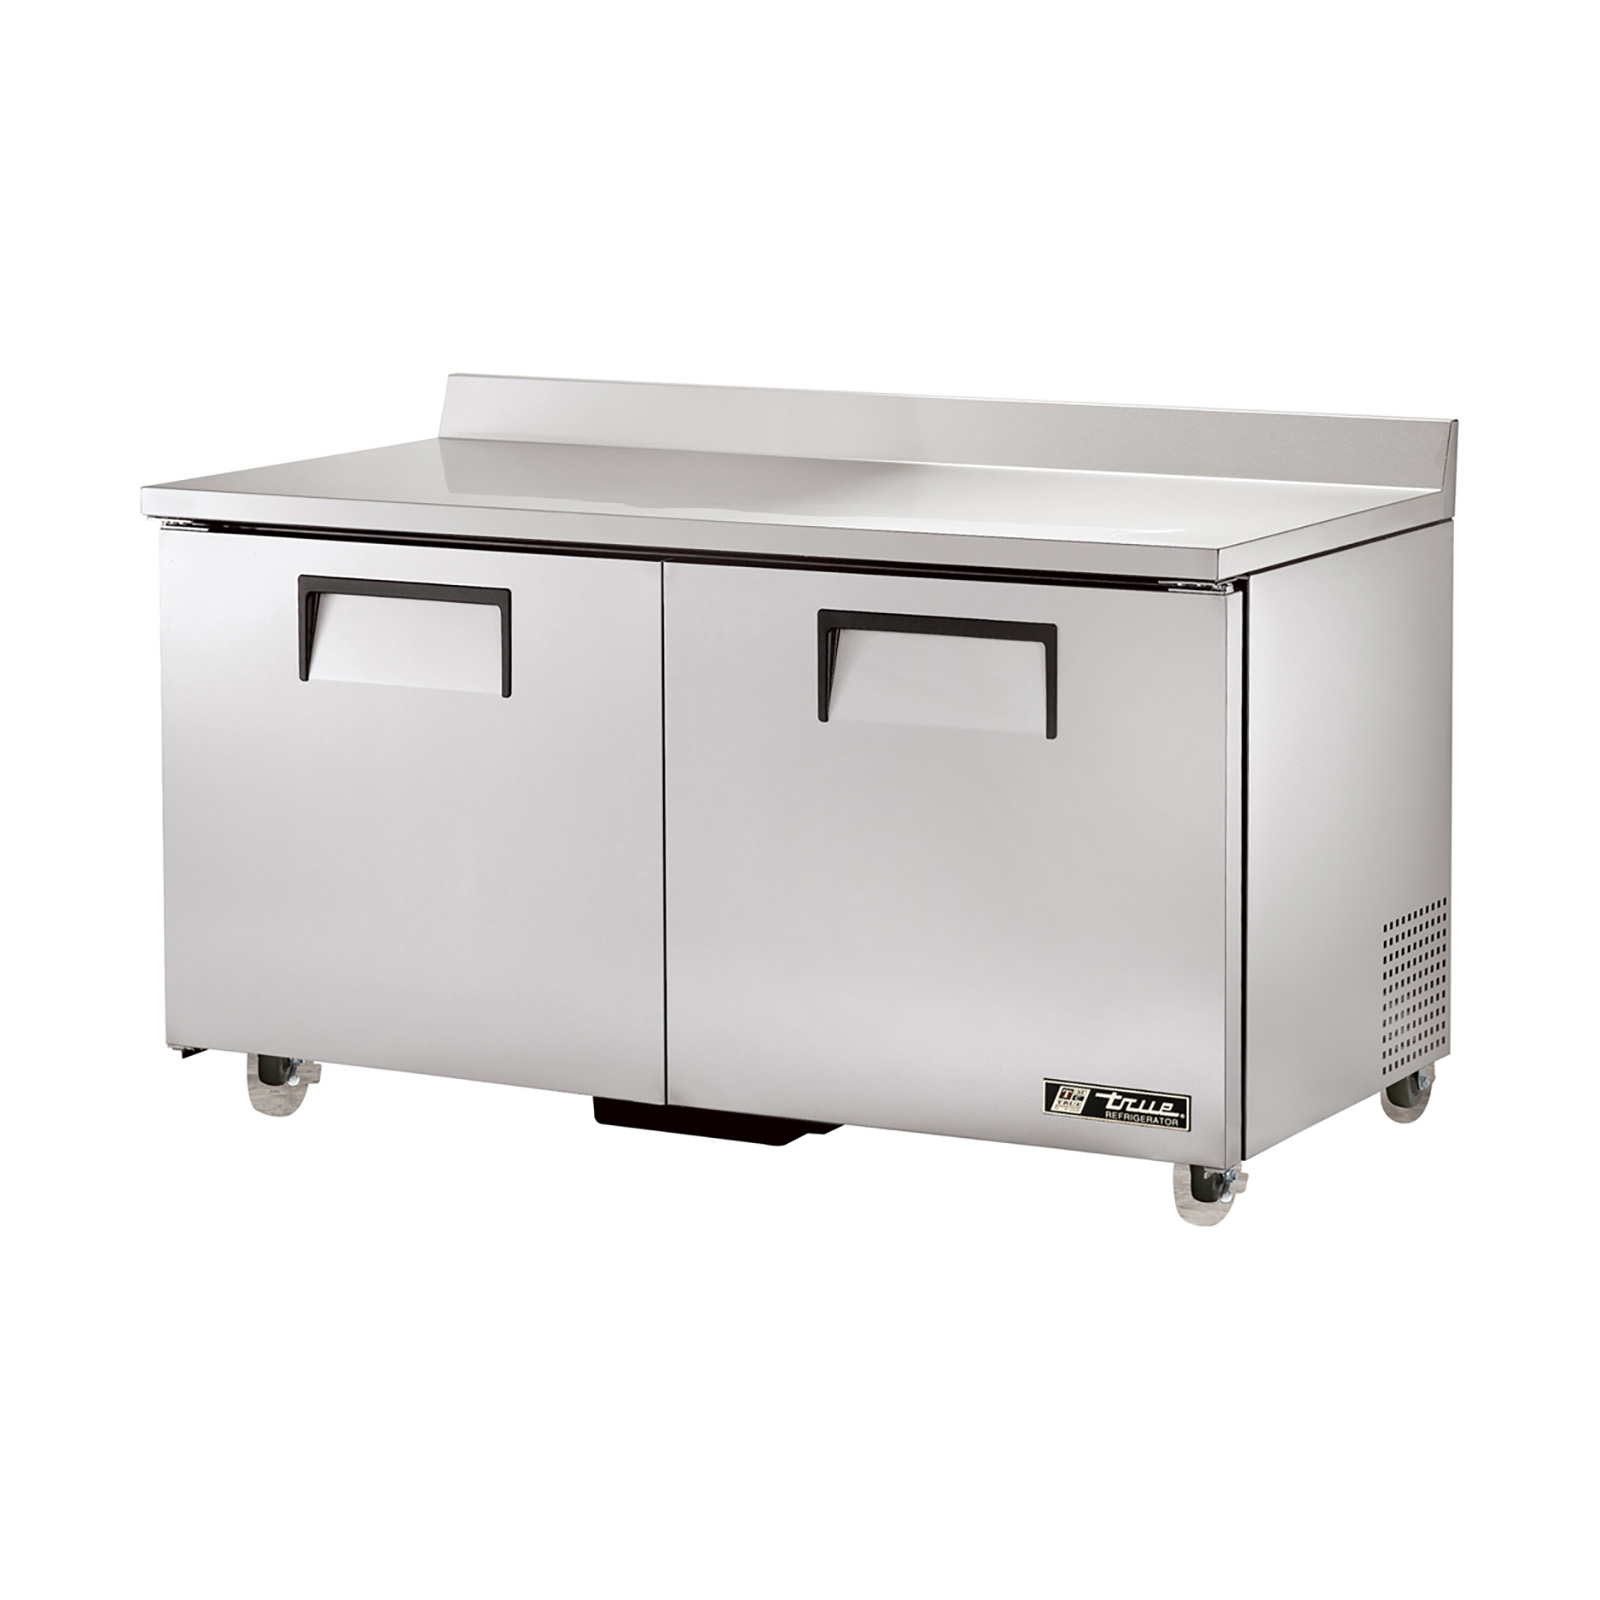 TWT-60-ADA True - ADA Compliant Work Top Refrigerator two-section